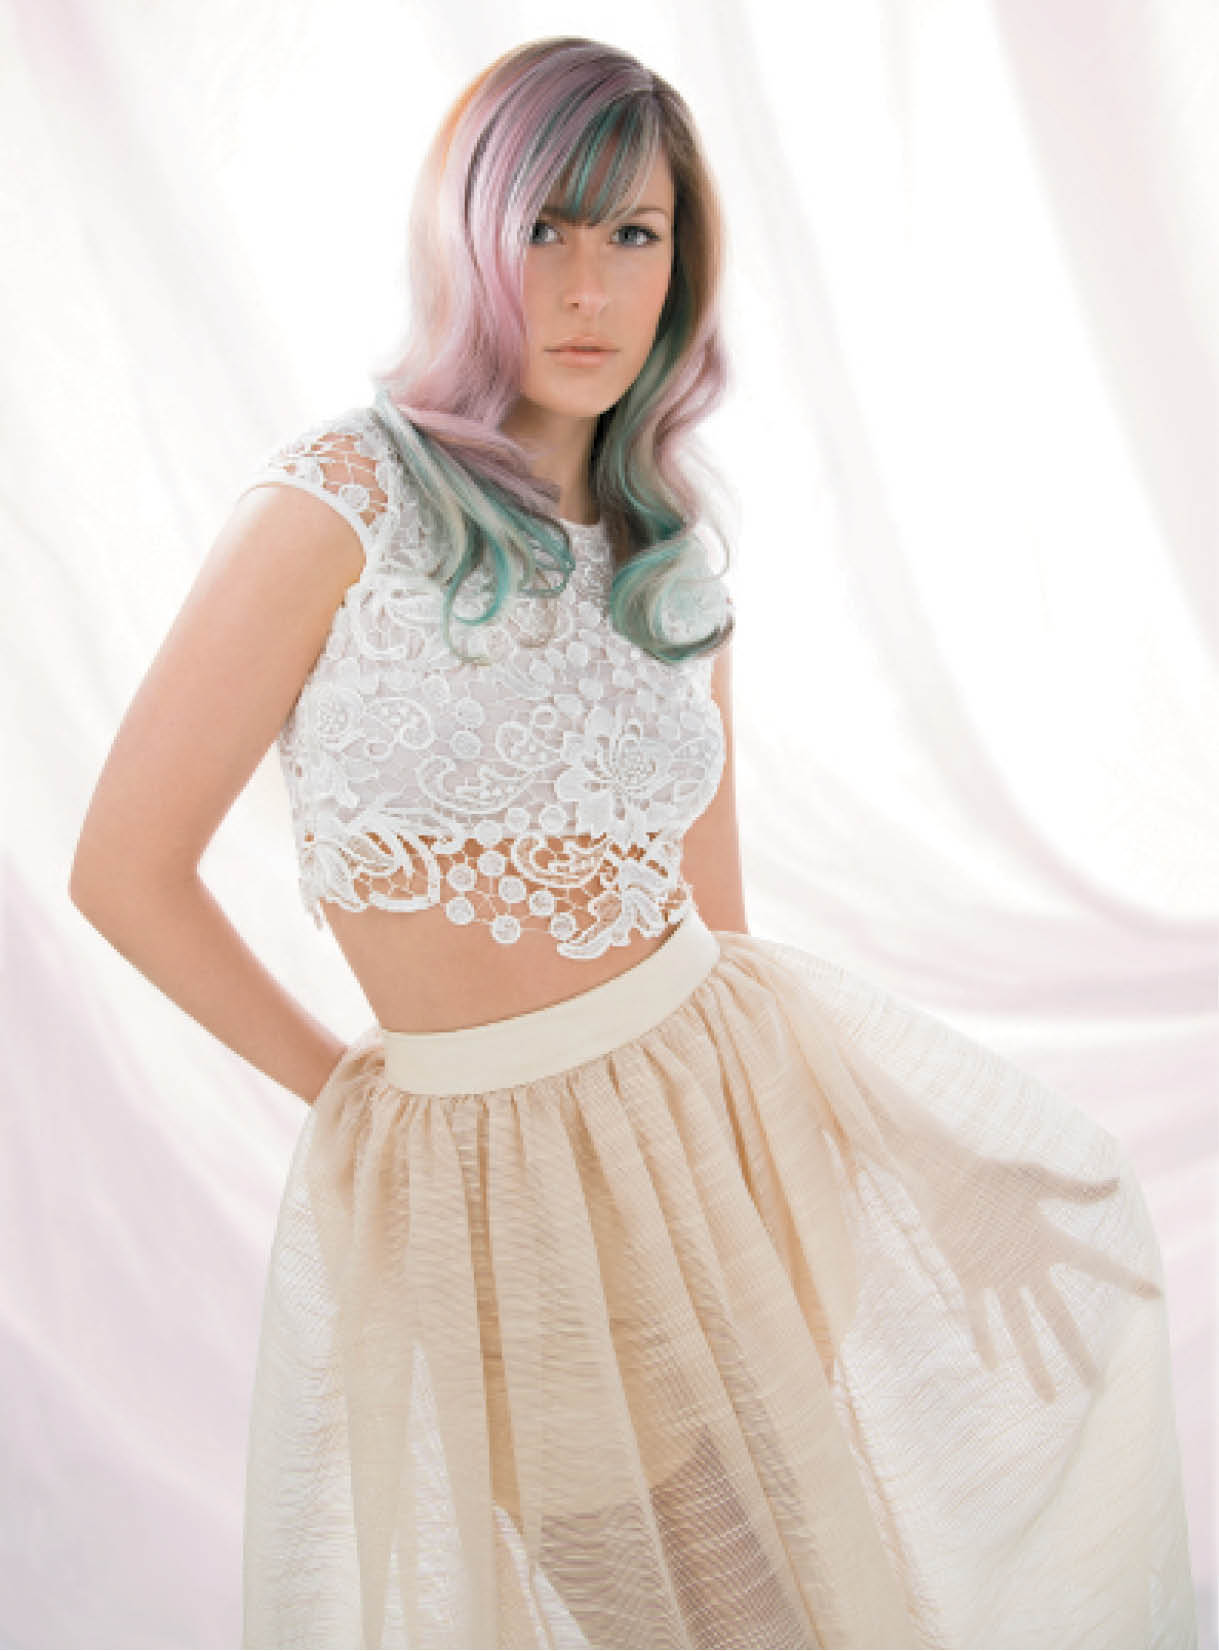 For this reinterpretation of the Journey to Enlightenment trend, Brenton Lee called on Wella Professionals' new Instamatic by Color Touch to imbue the hair with pink dream, jaded mint and ocean storm, before styling it with 1- and ½-inch curling irons to softly set strands.